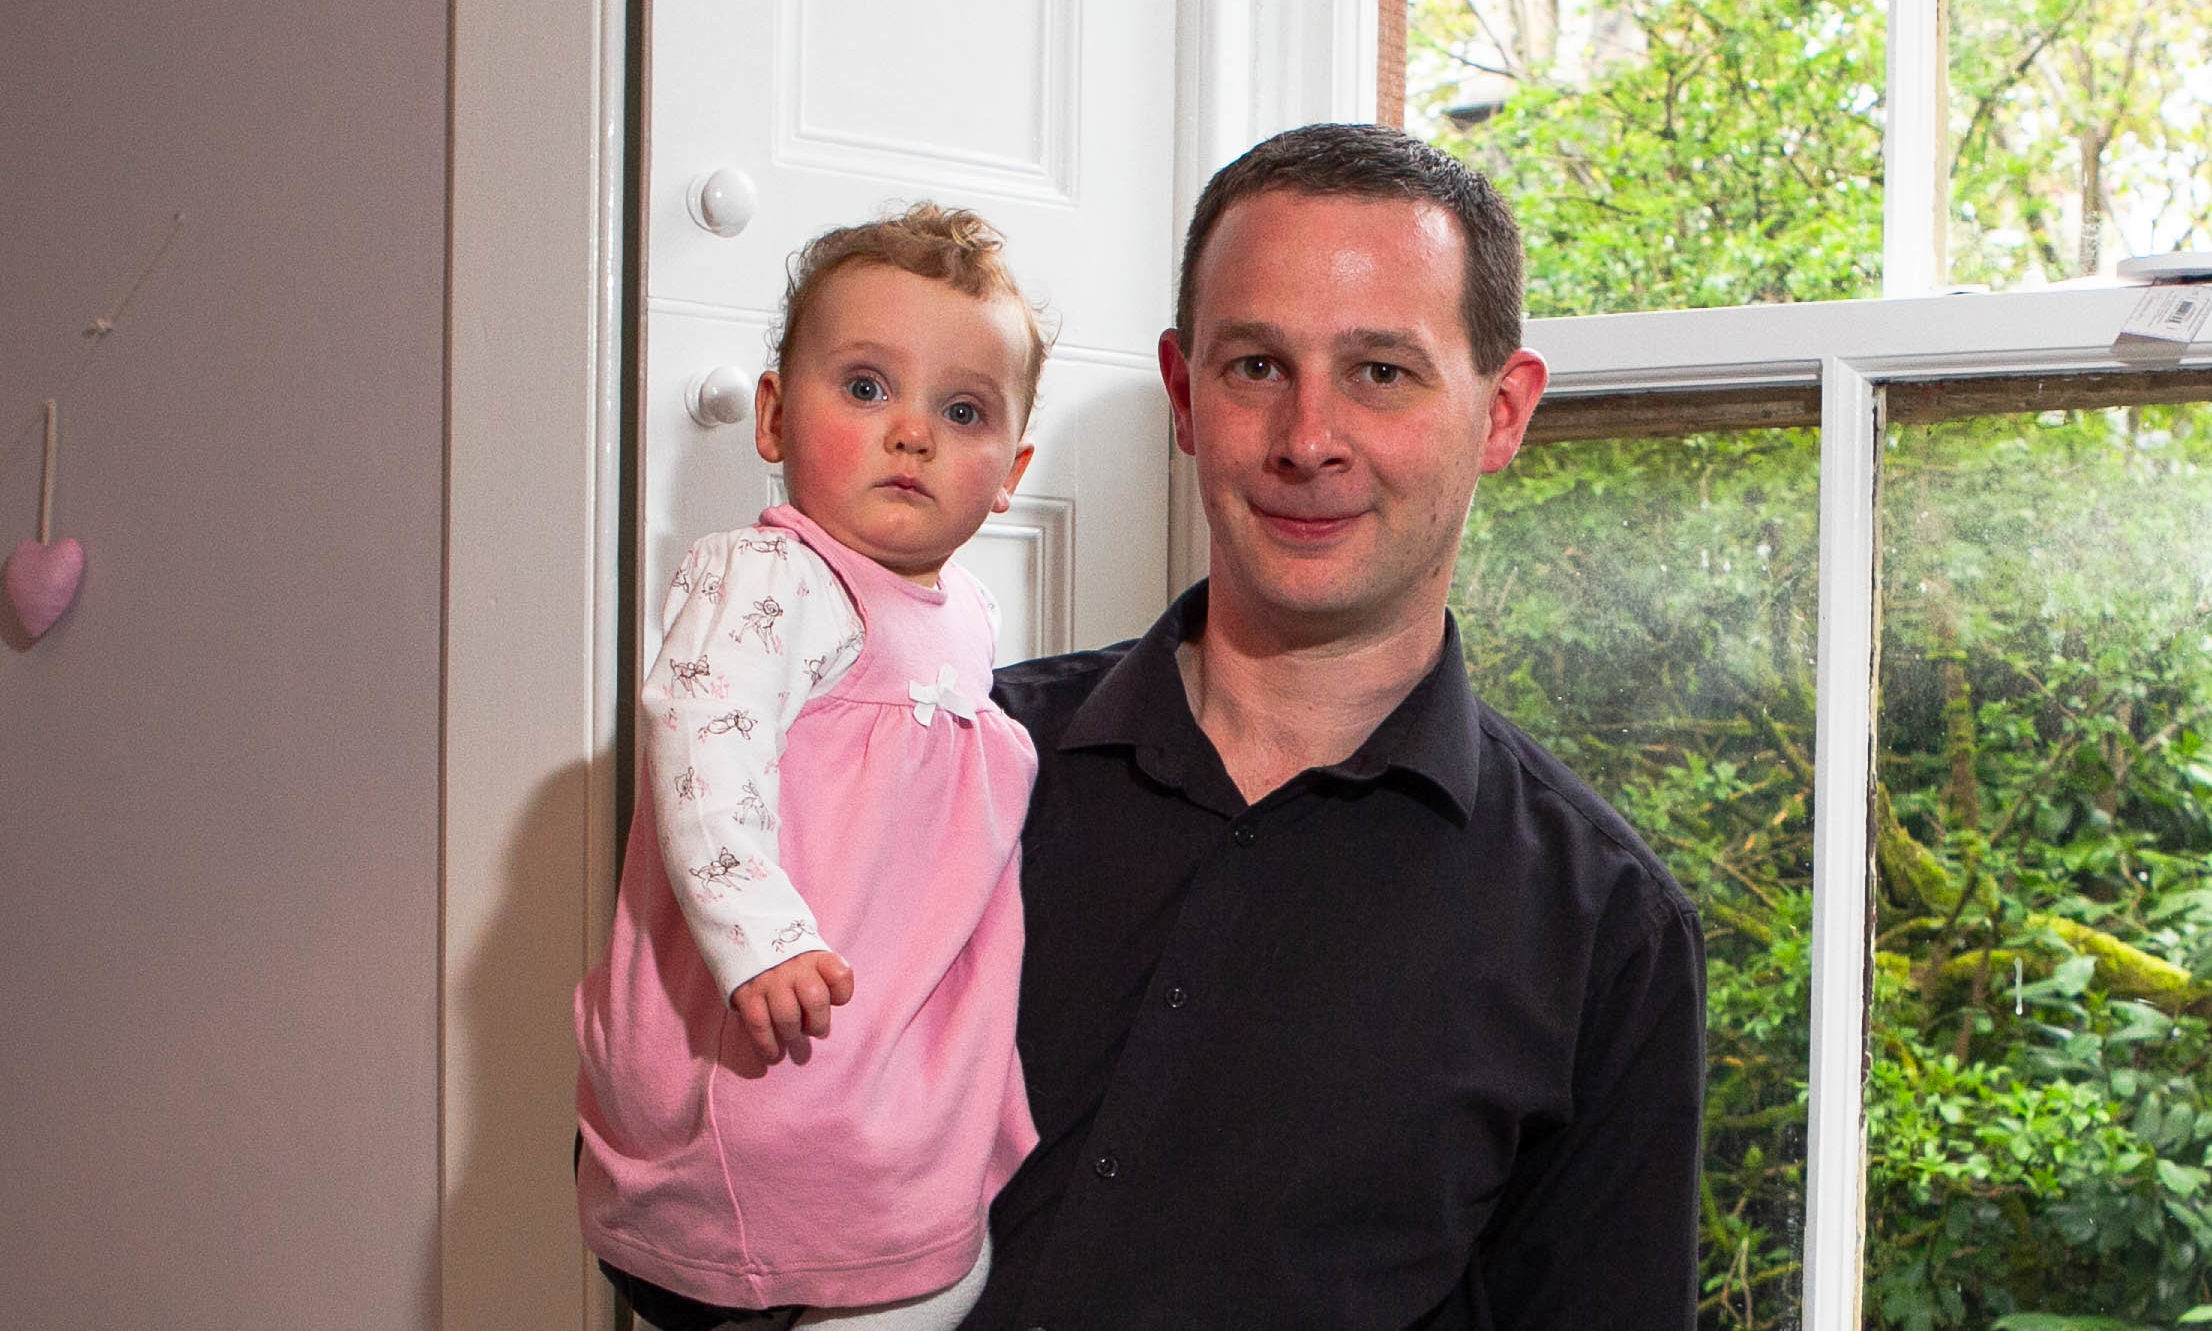 Andrew Cameron with his daughter Jess (Chris Austin / DC Thomson)